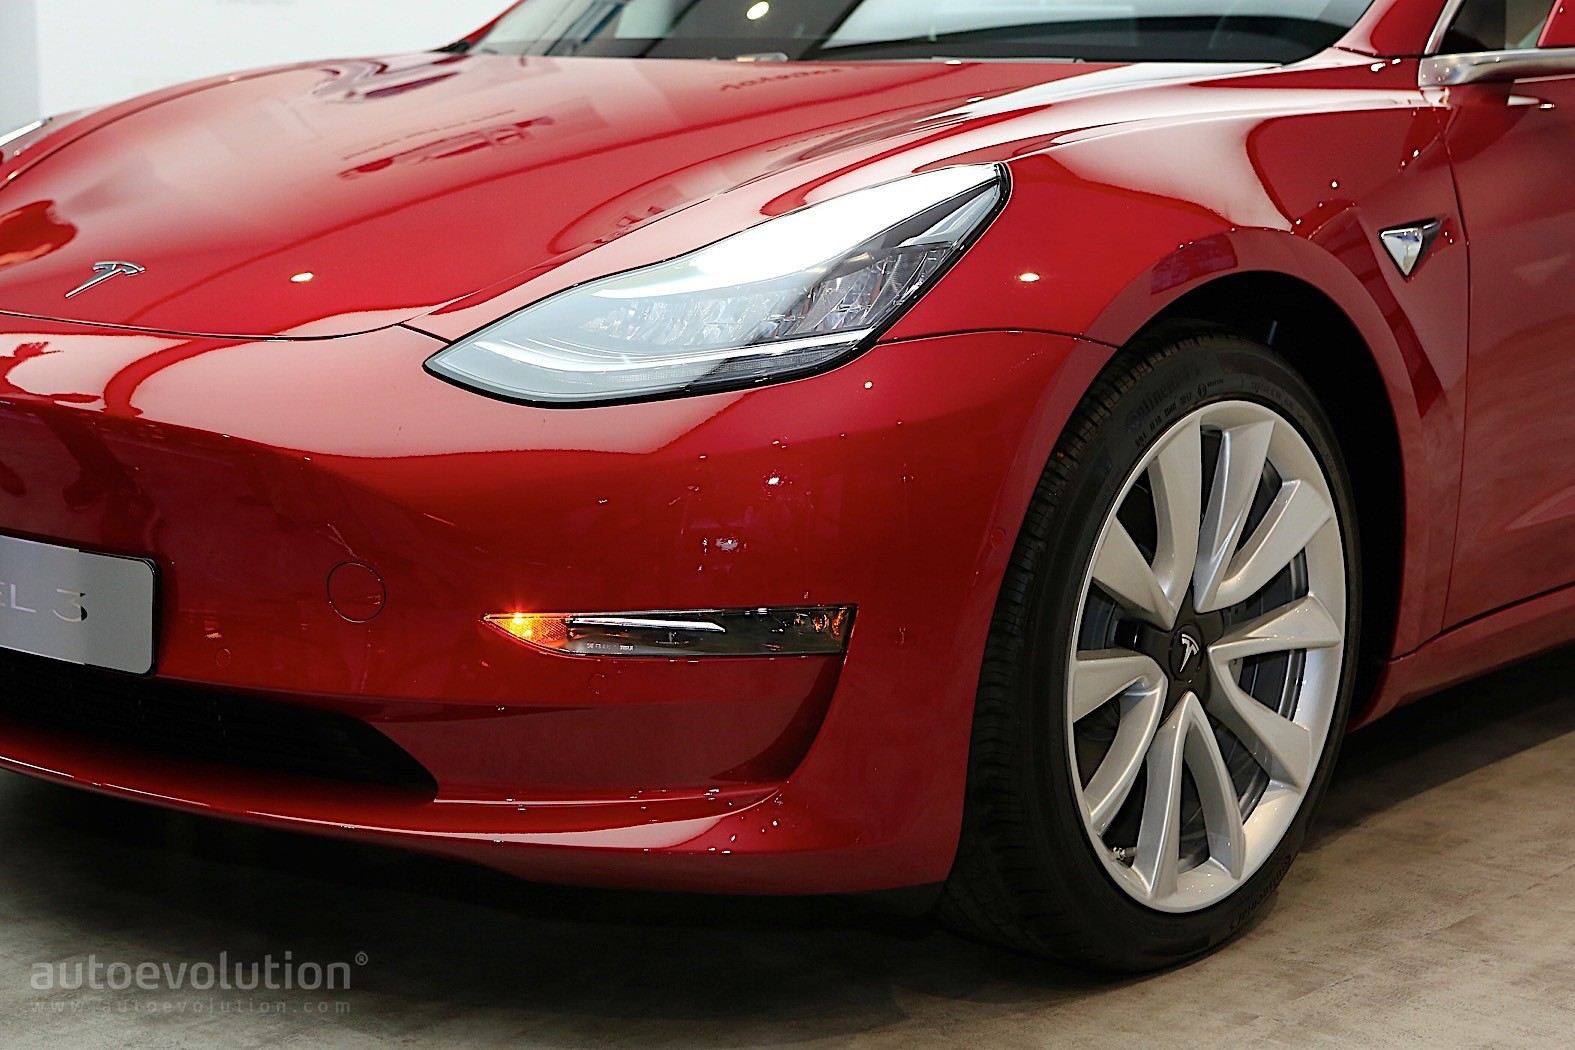 Tesla Model 3 Is The Hot Red Car Of The Moment In Paris